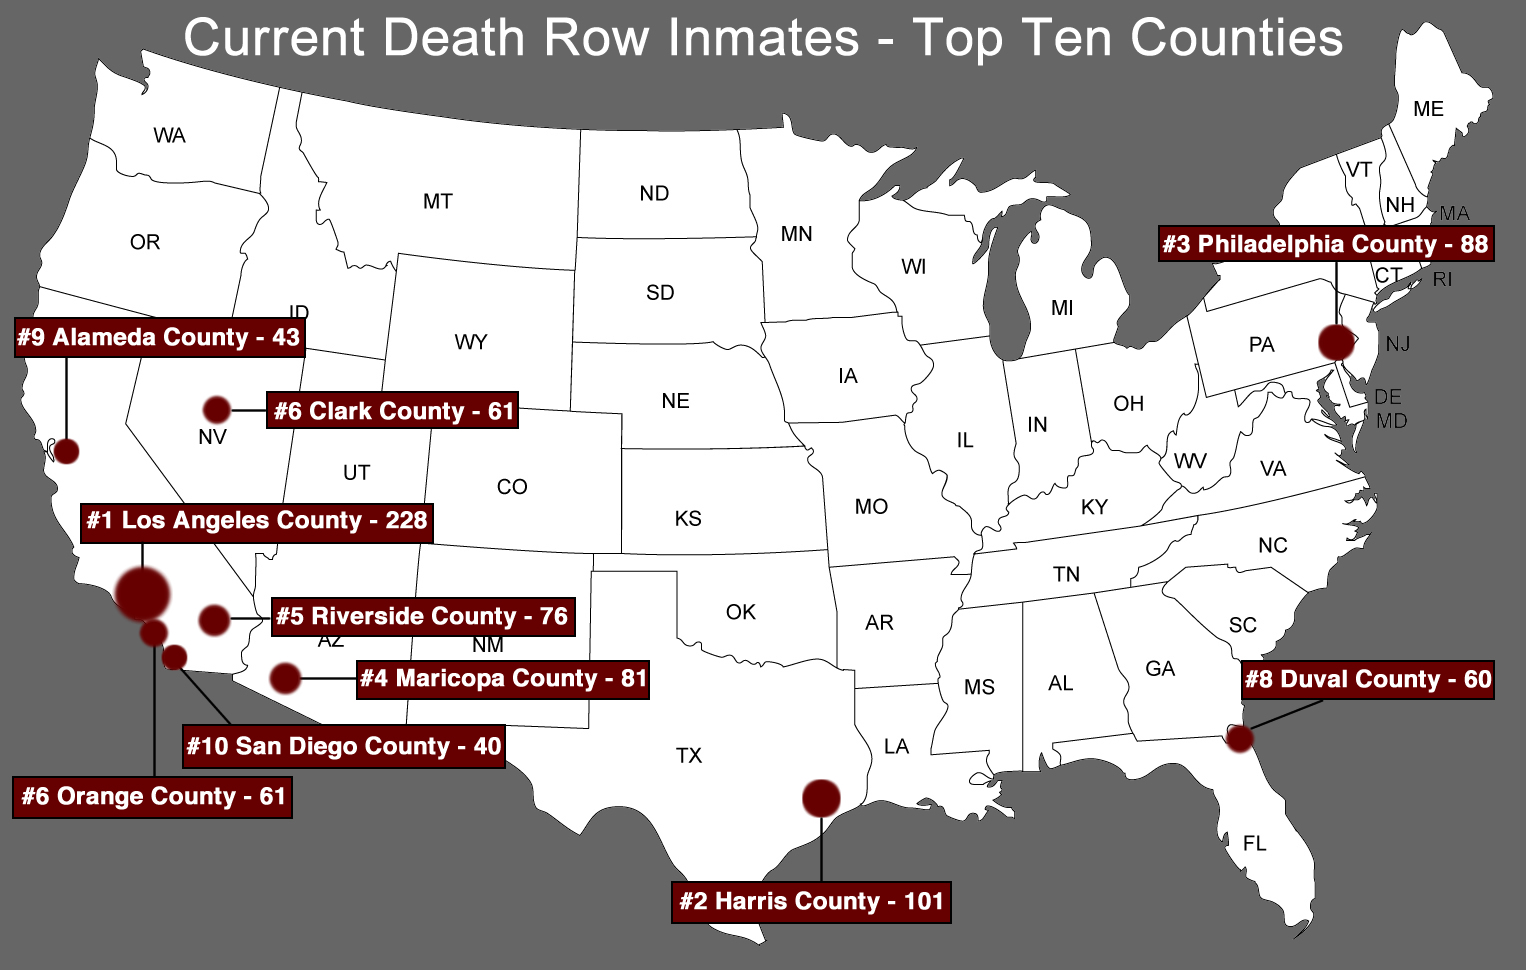 The 2% Death Penalty, p.8 The next map illustrates the top counties in terms of inmates on death row as of January 1, 2013.